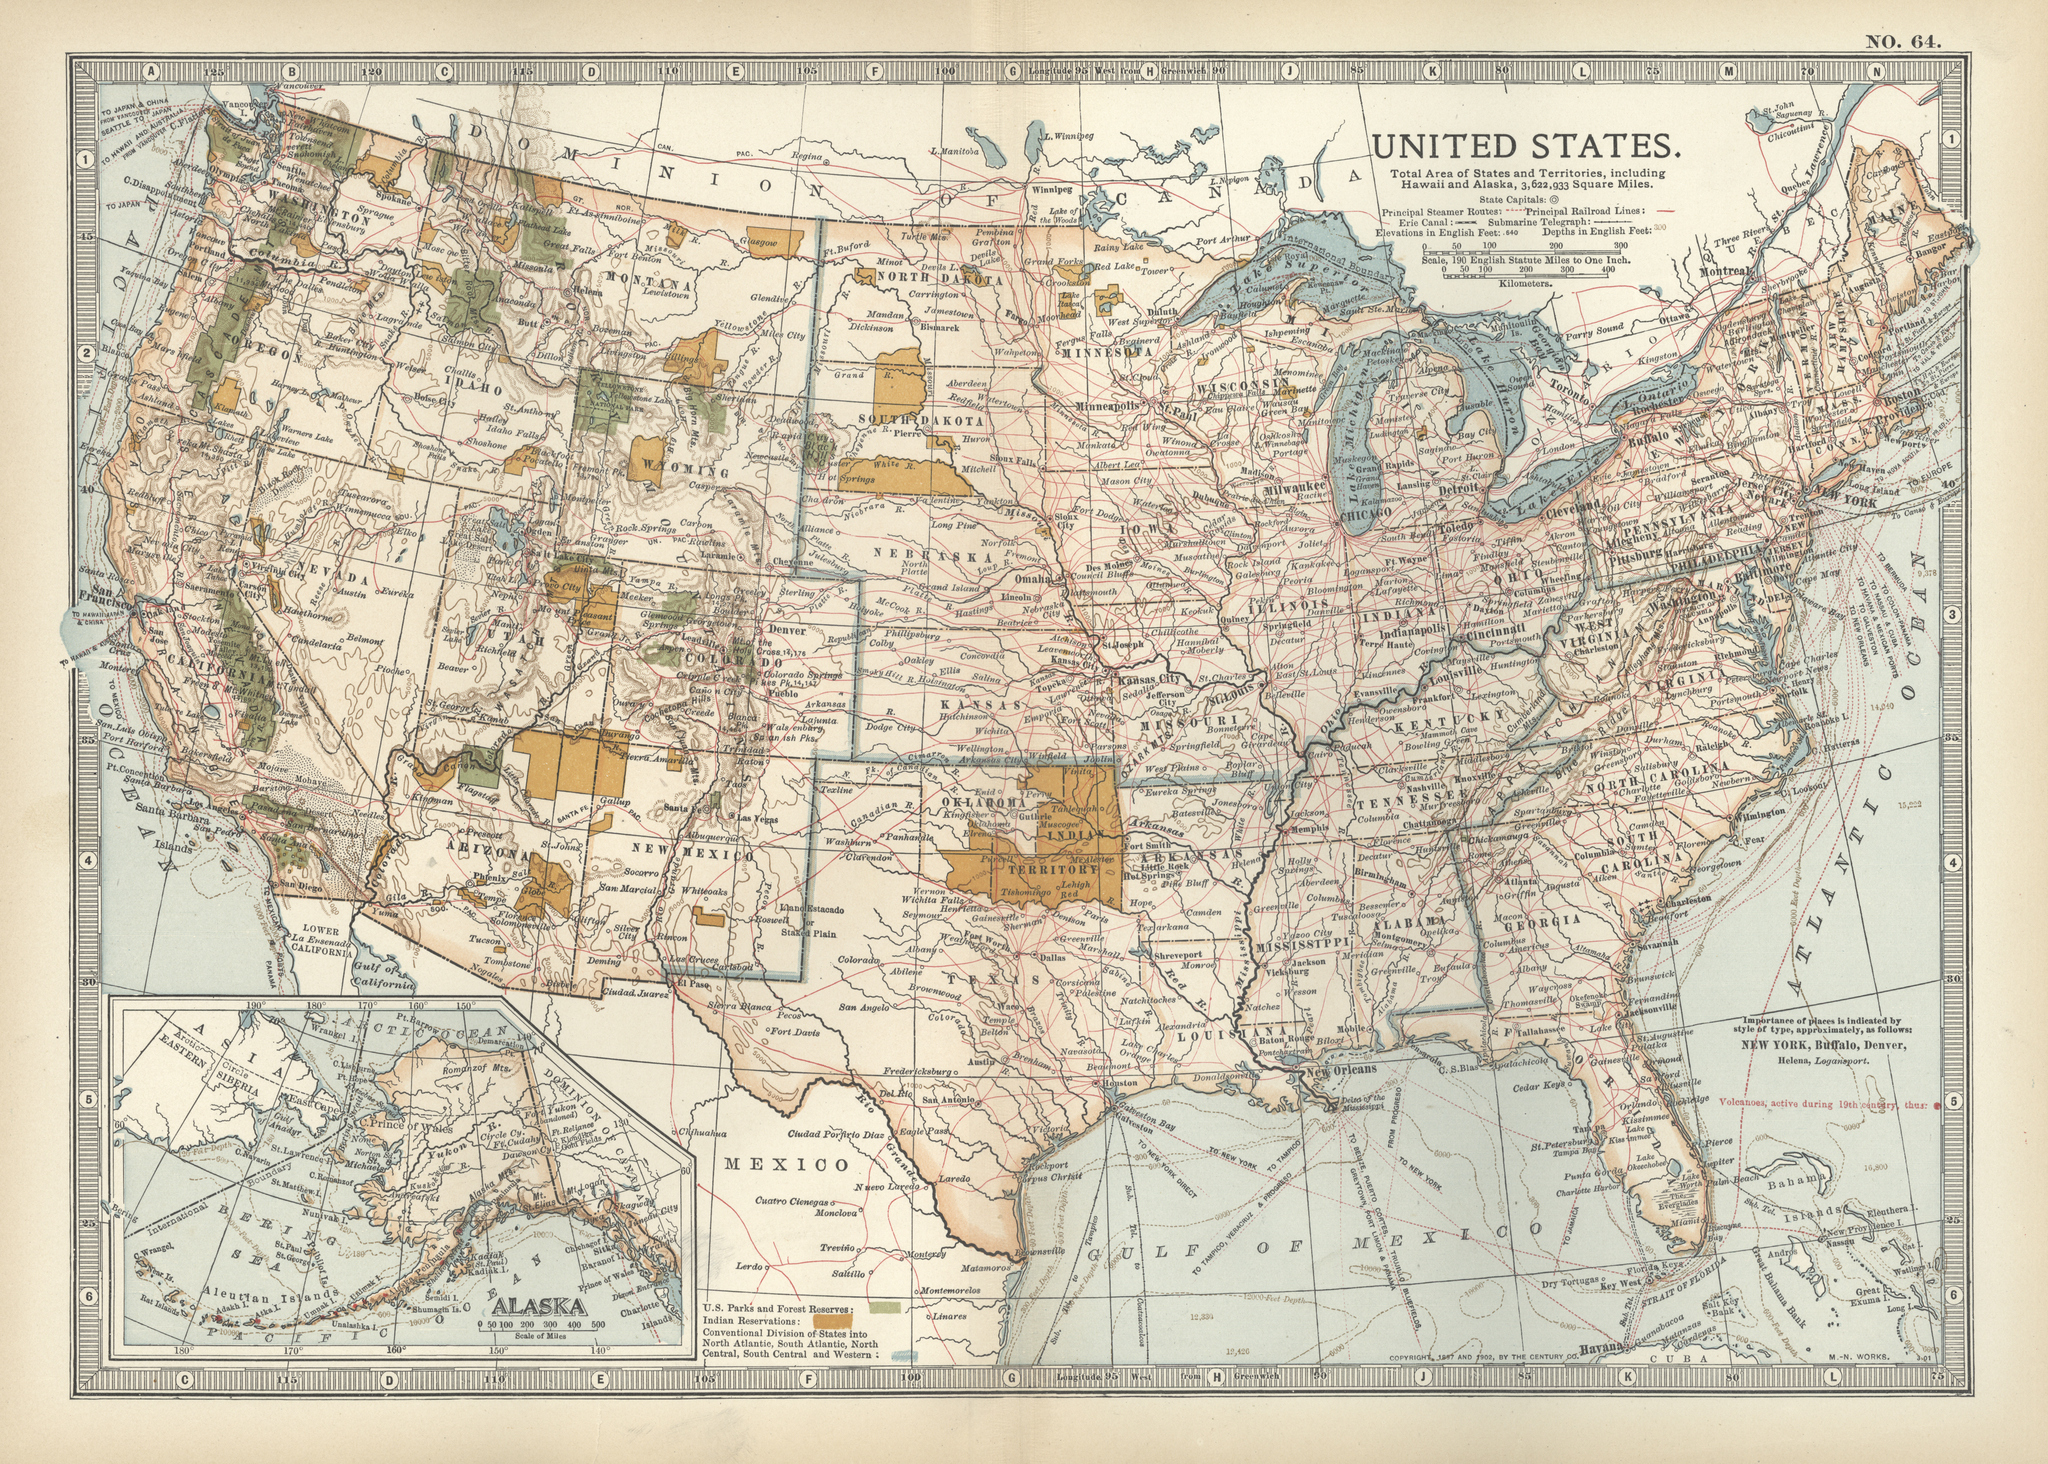 Map of the United States with inset of Alaska